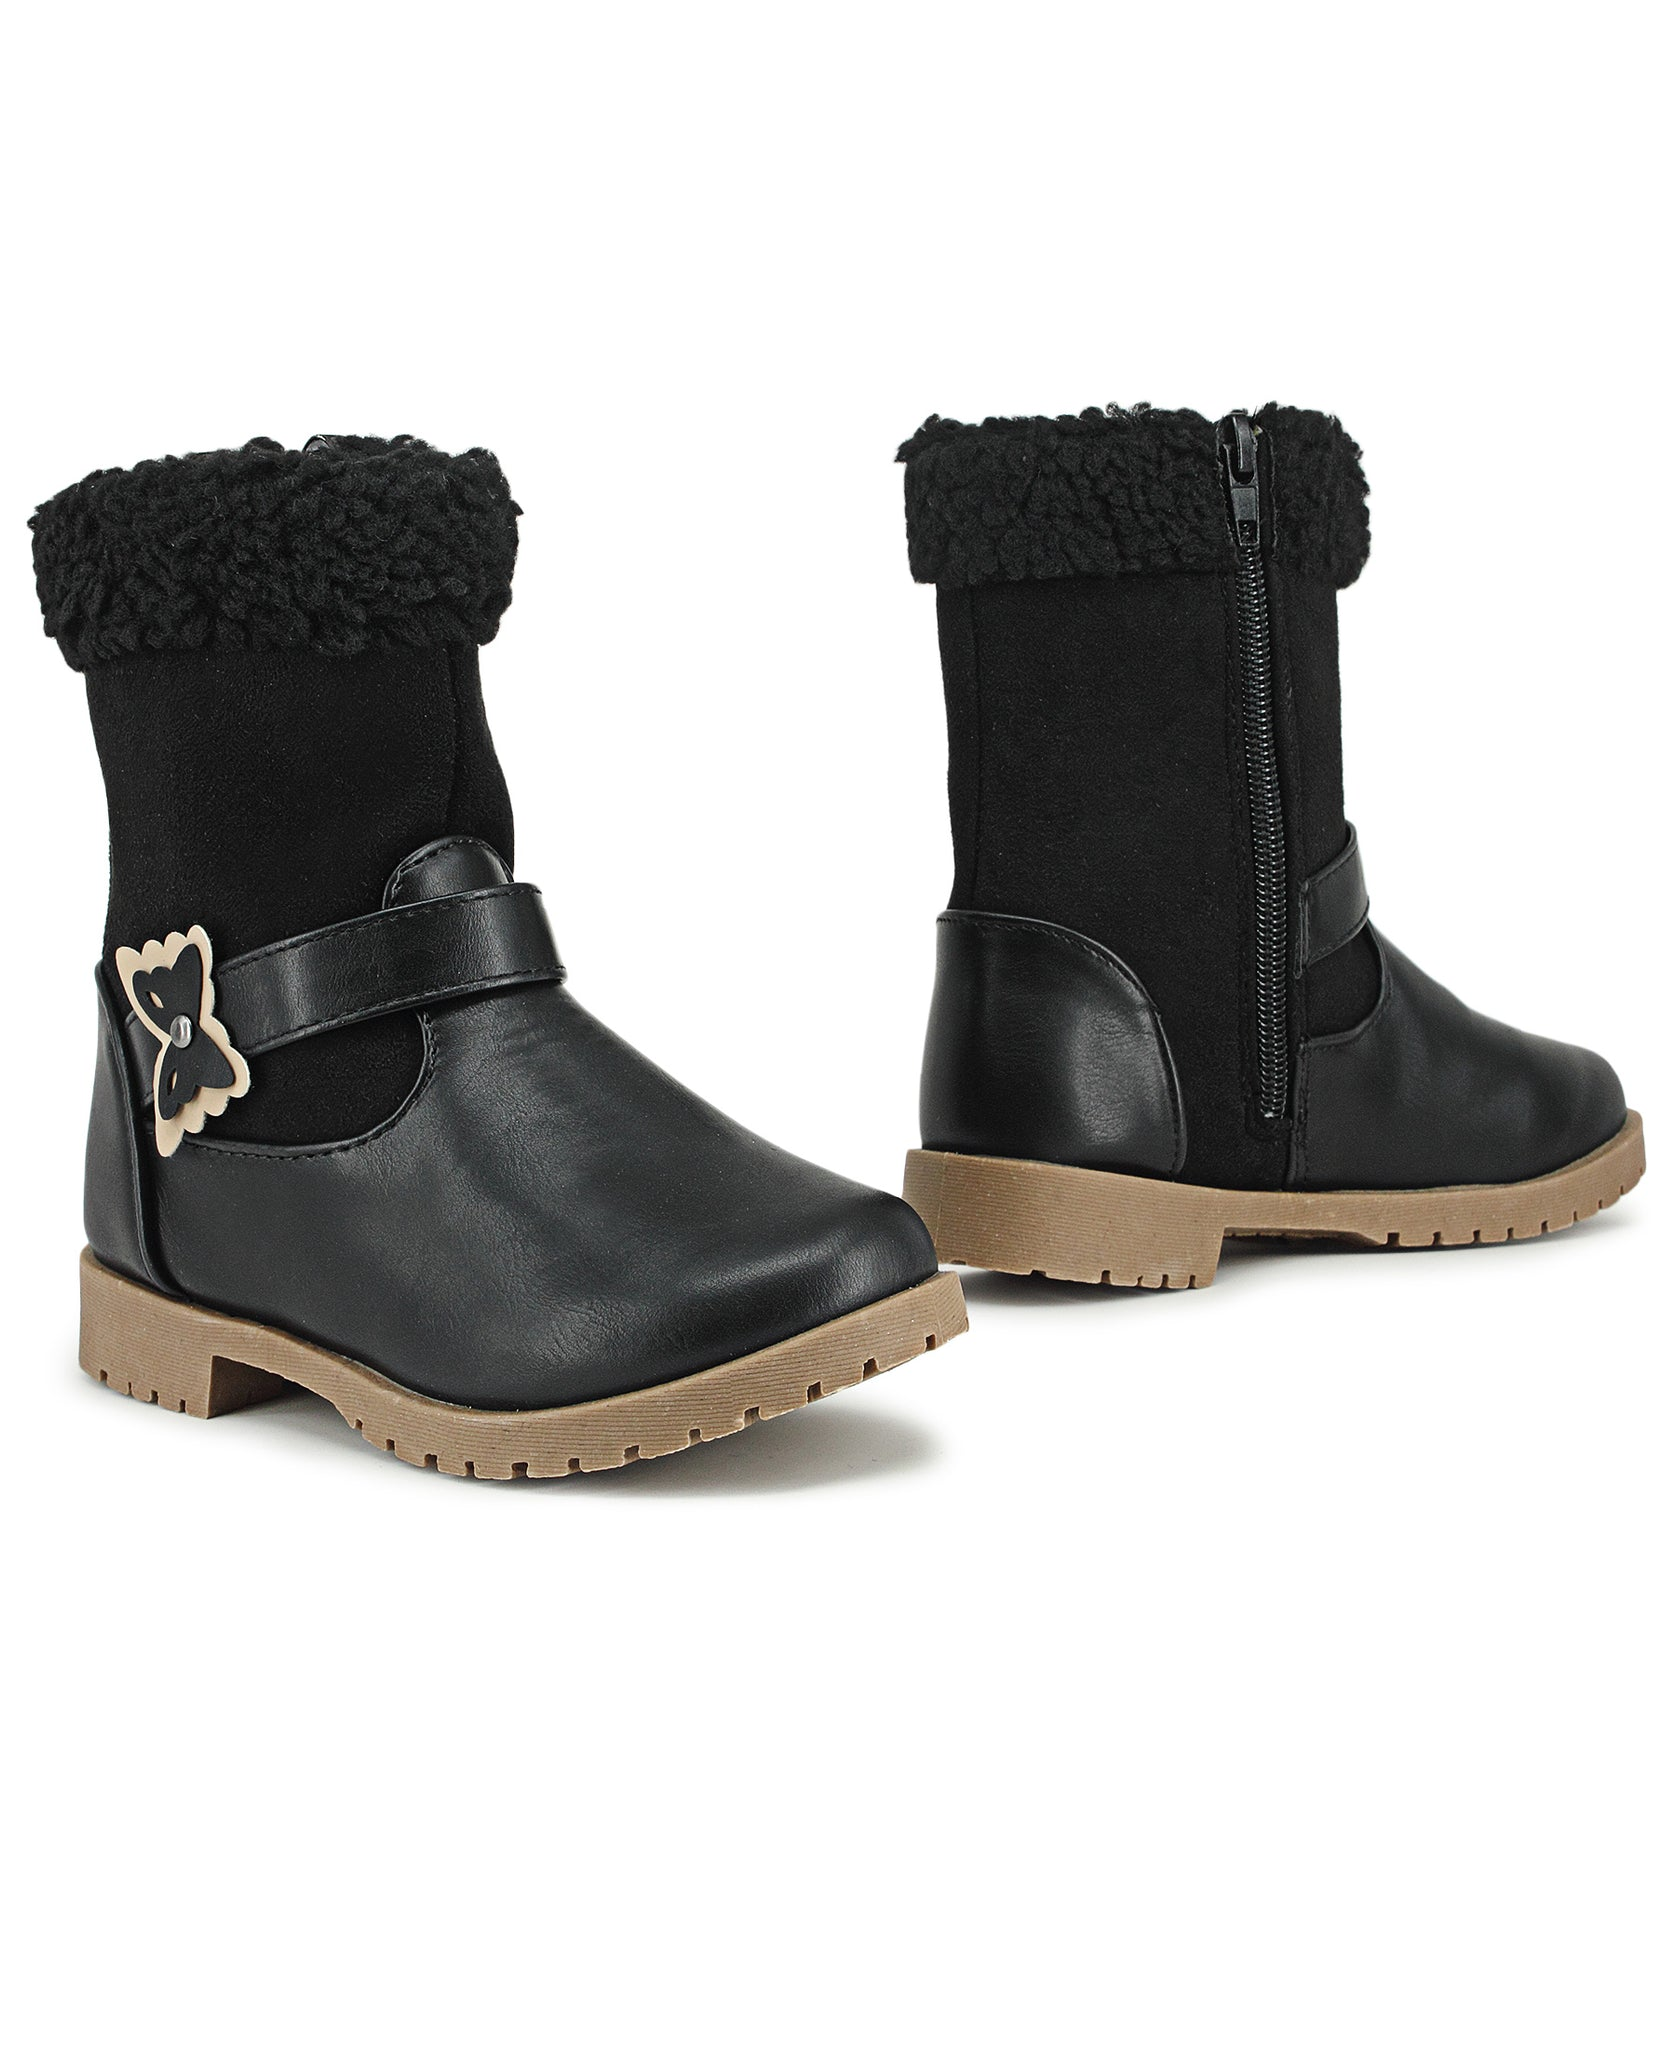 Girls Boots - Black